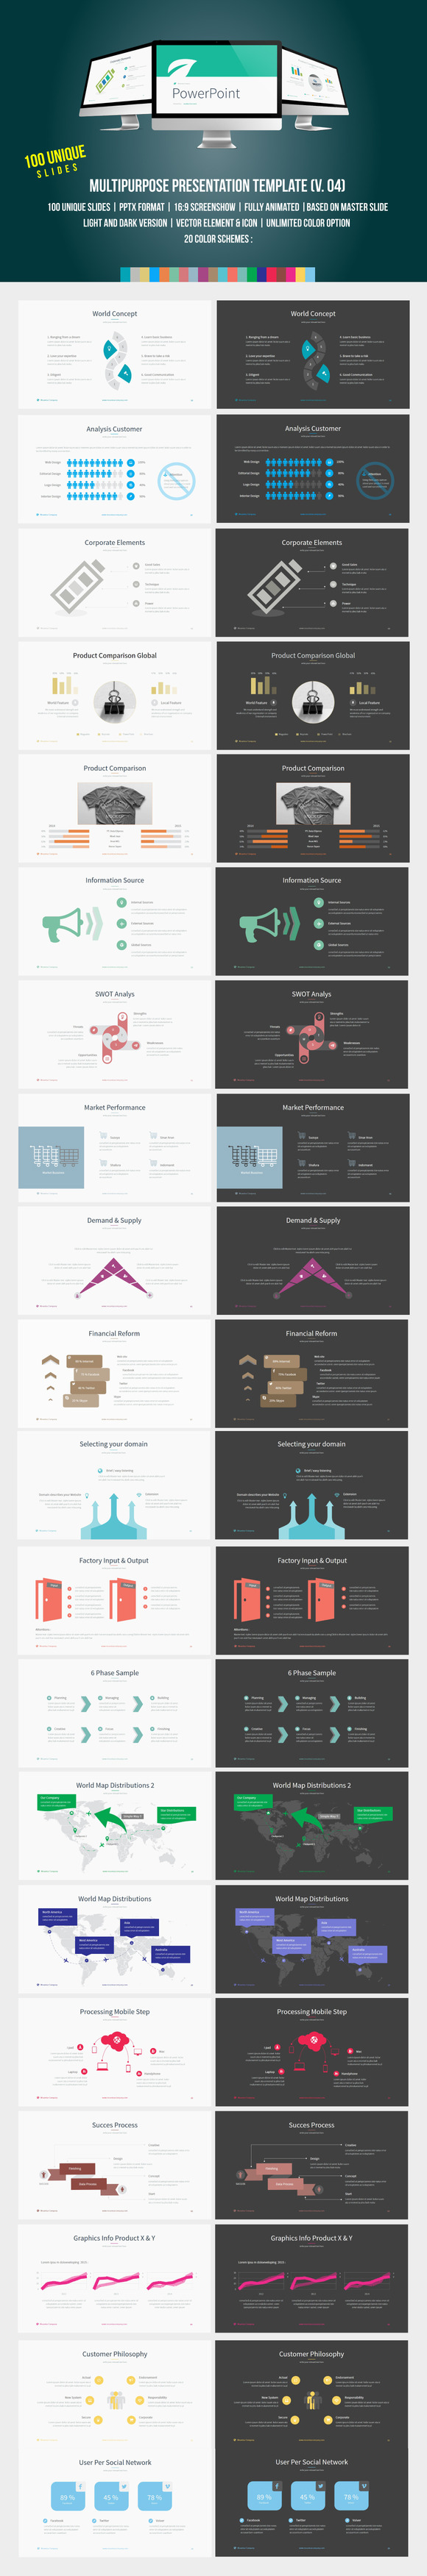 Multipurpose PowerPoint Template 04